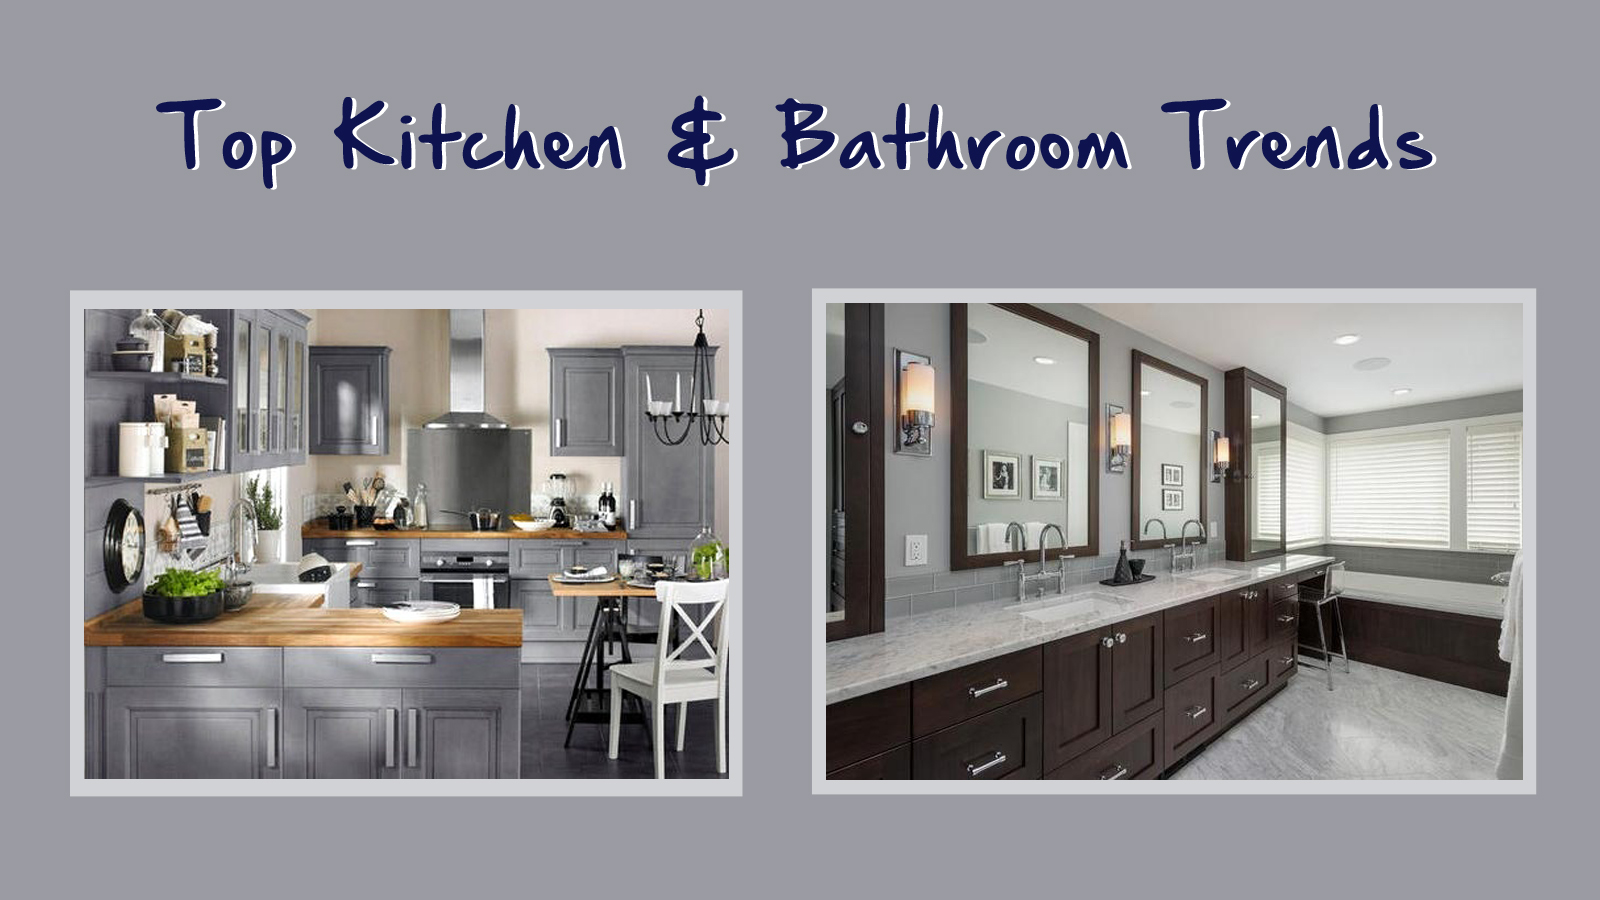 Top Kitchen & Bathroom Trends - Home Check Plus